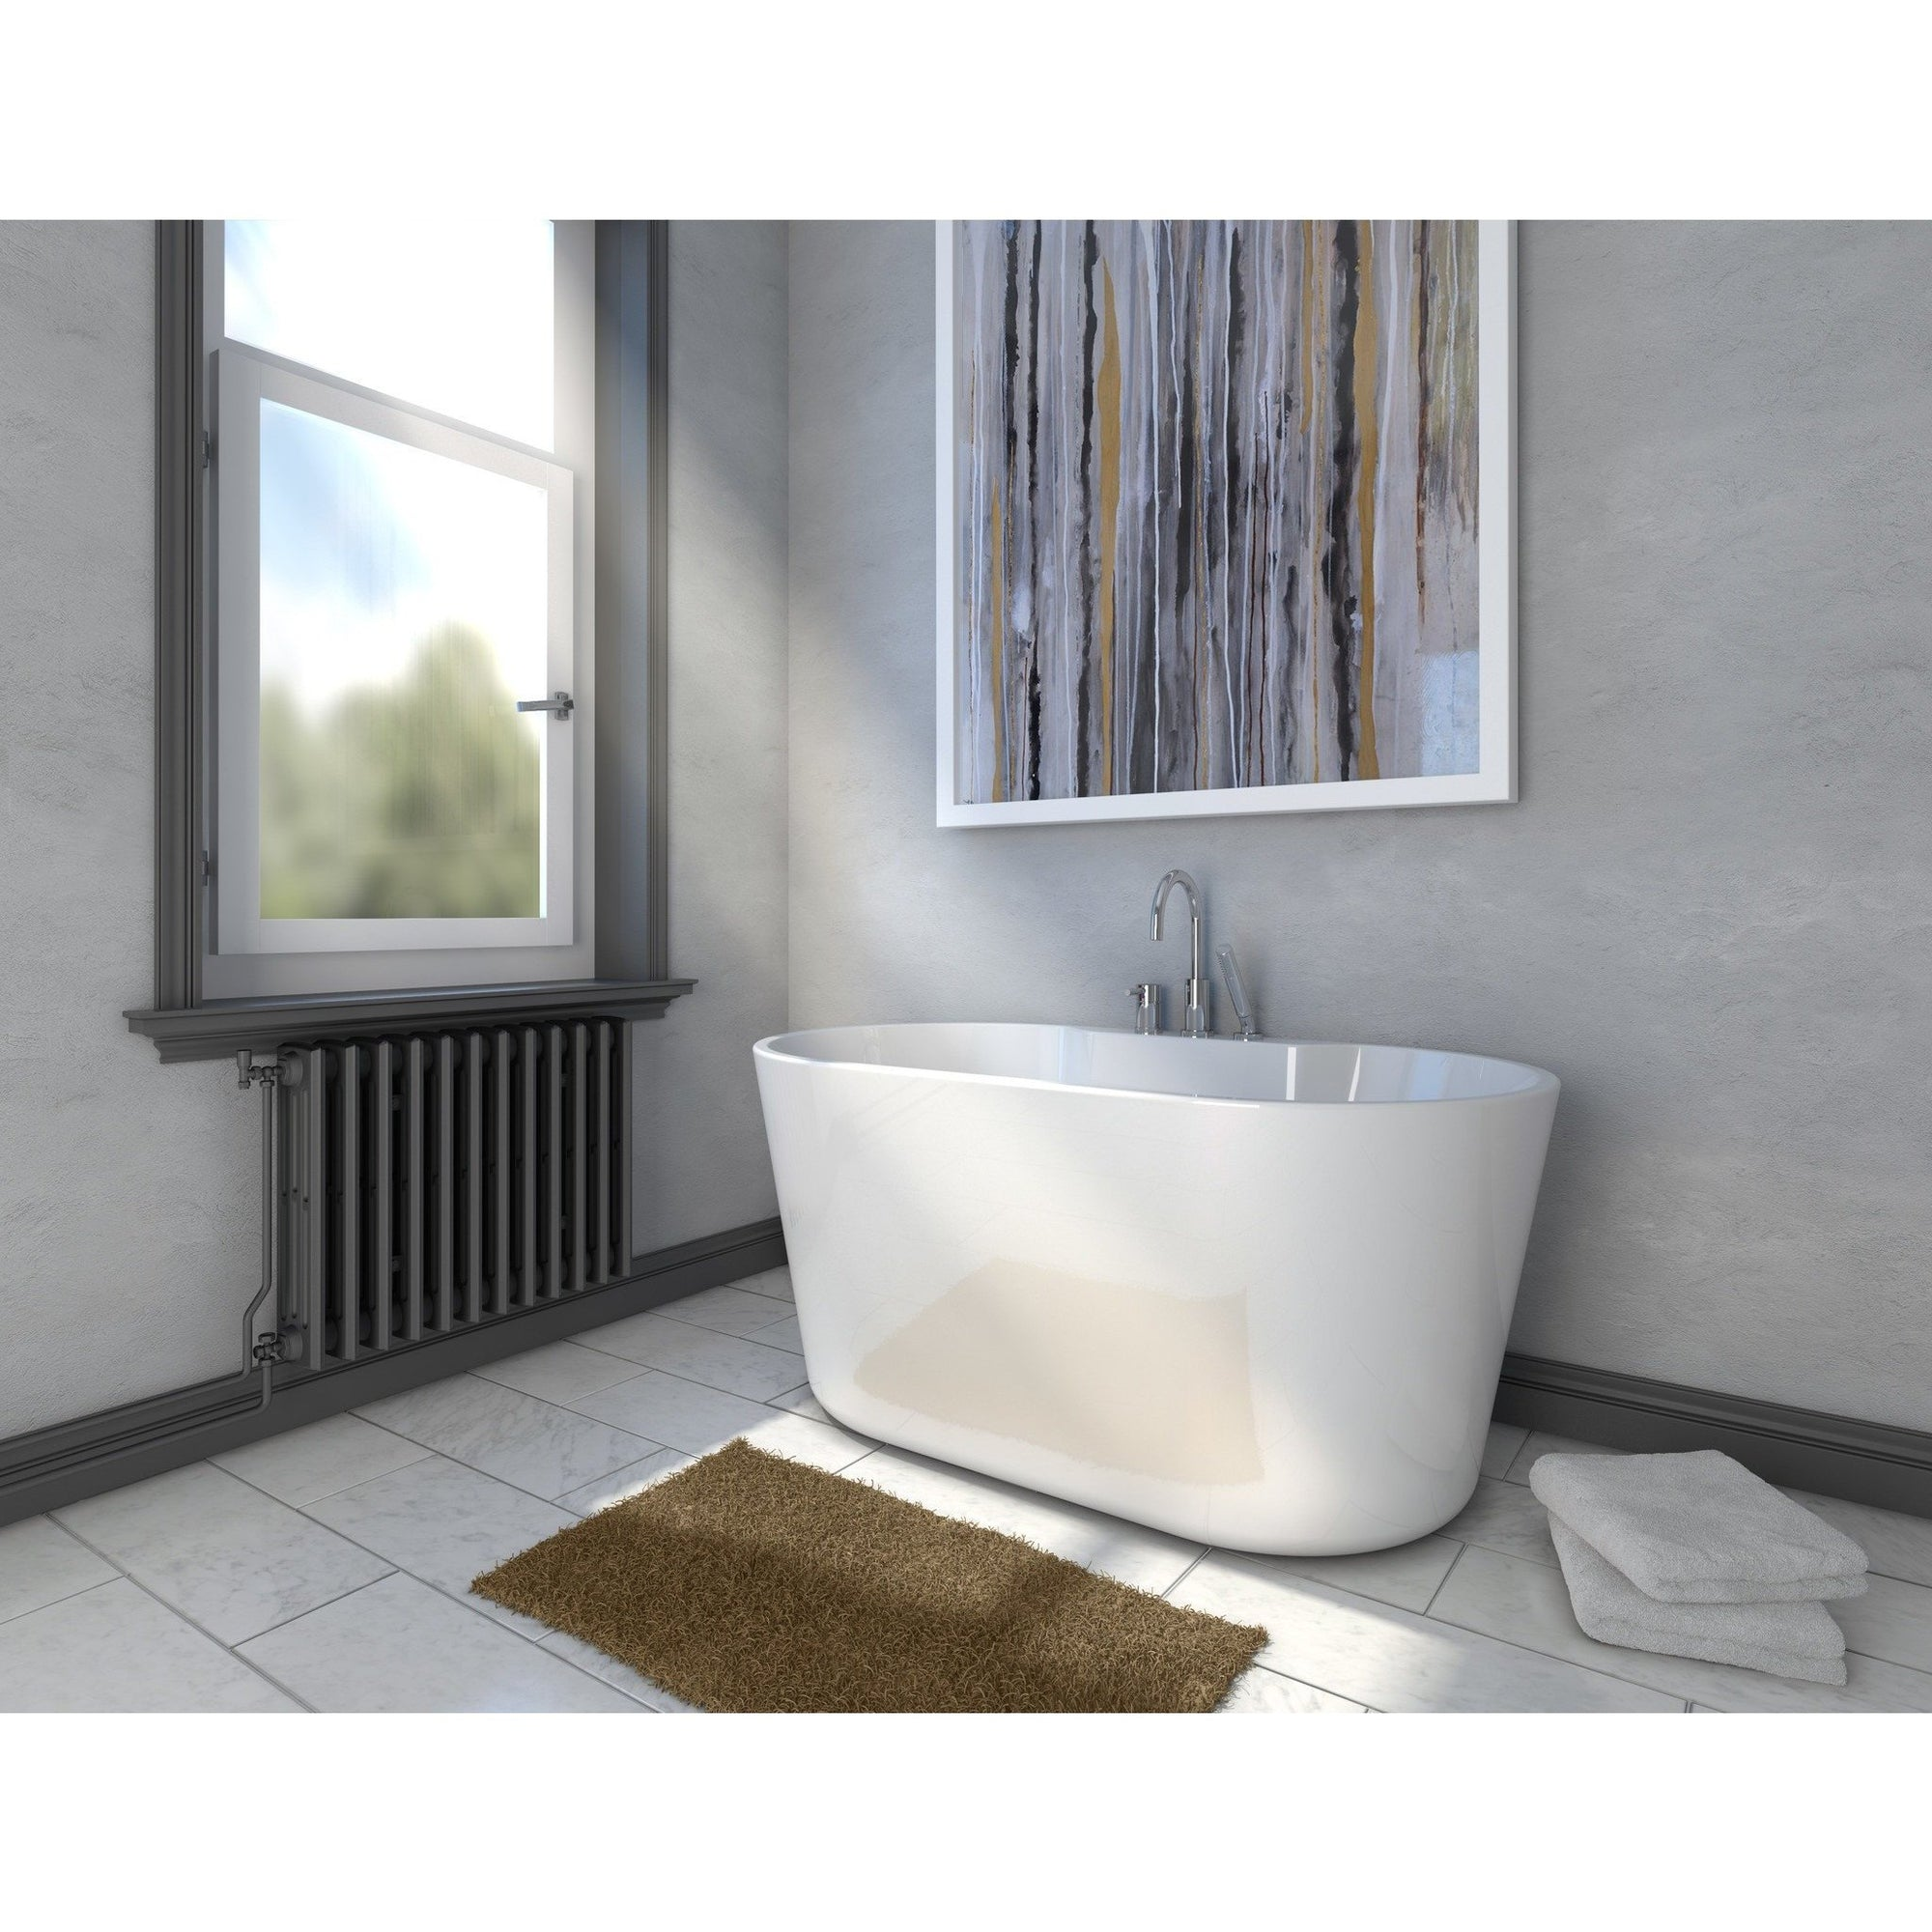 A E Bath And Shower Retro Acrylic Small 56 Premium All In One Freestanding Oval Tub Package